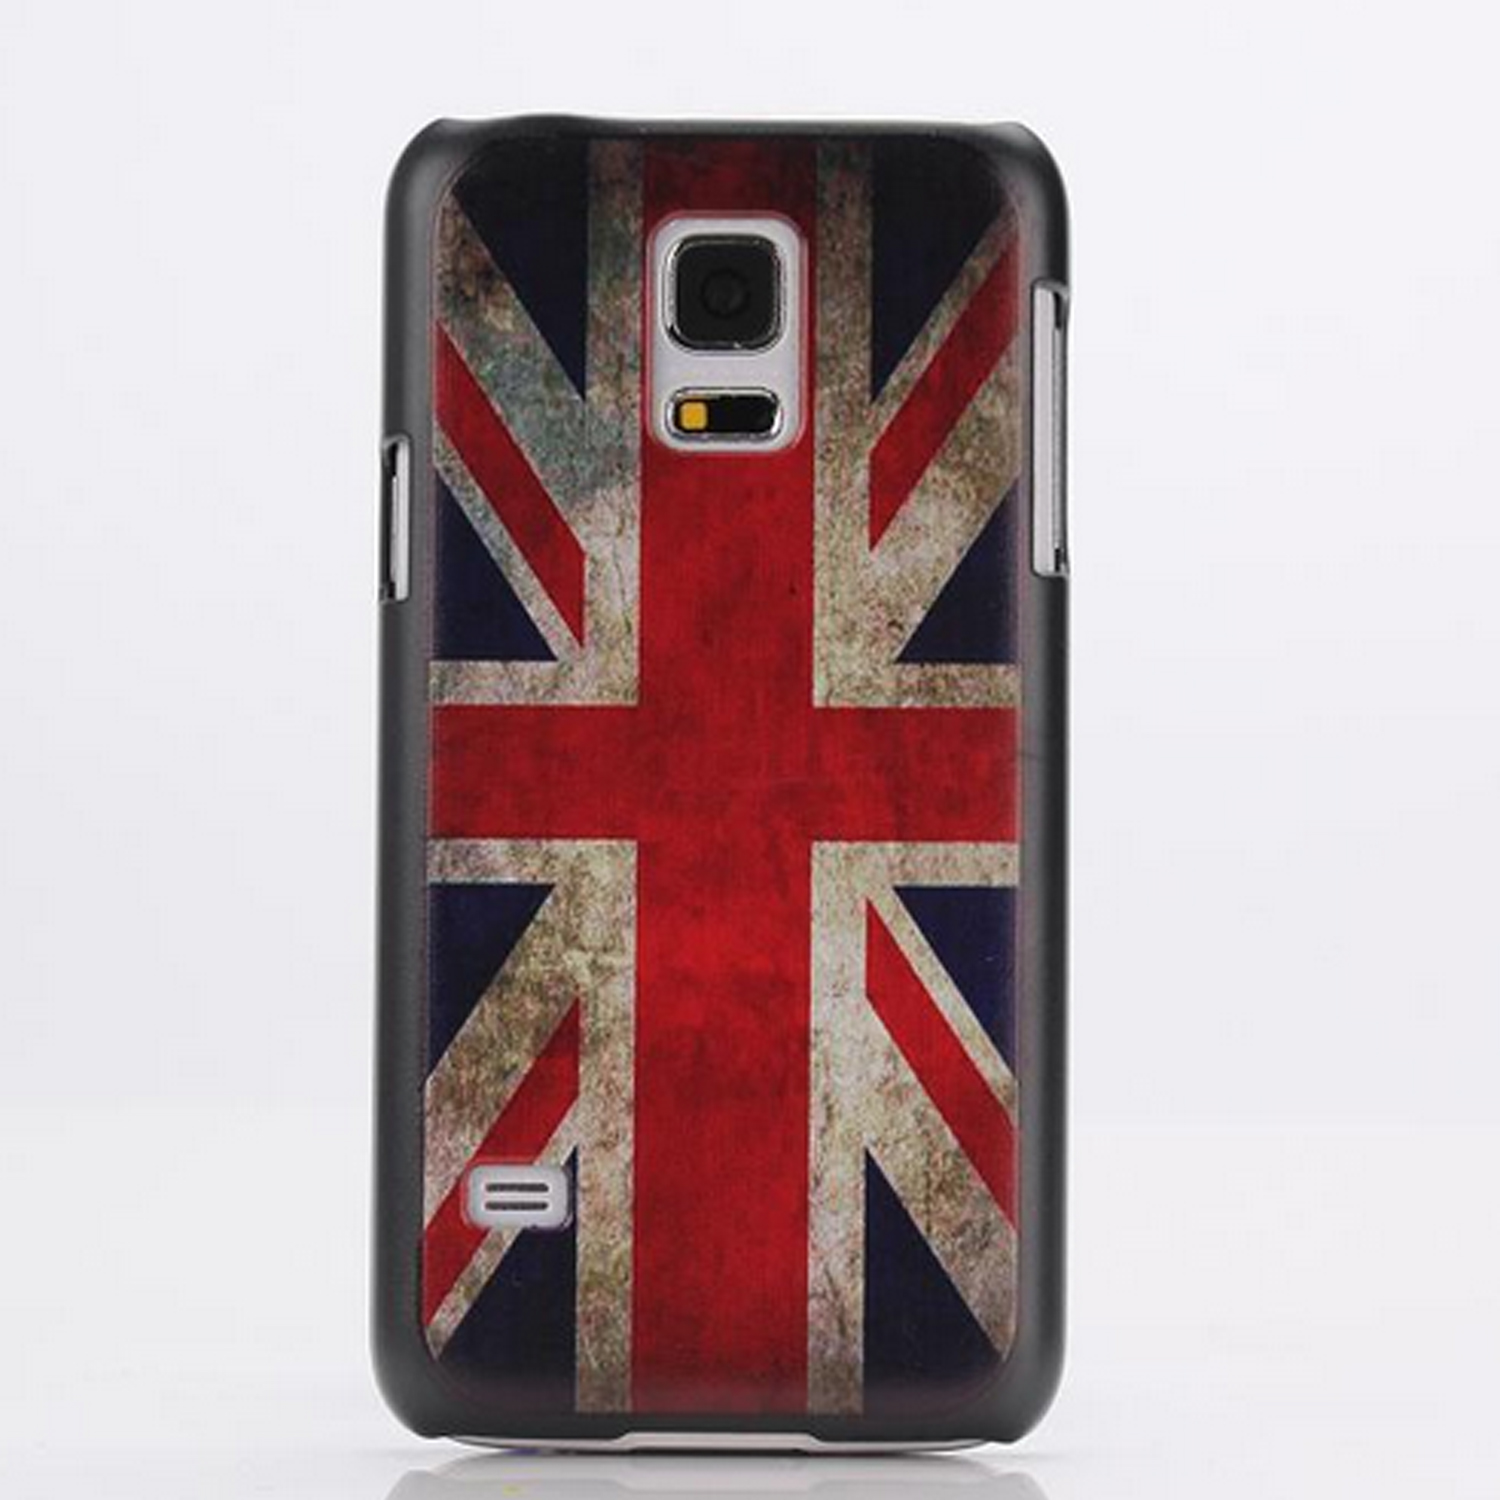 Kritzel Case Collection Galaxy S5 mini - Mod. 511